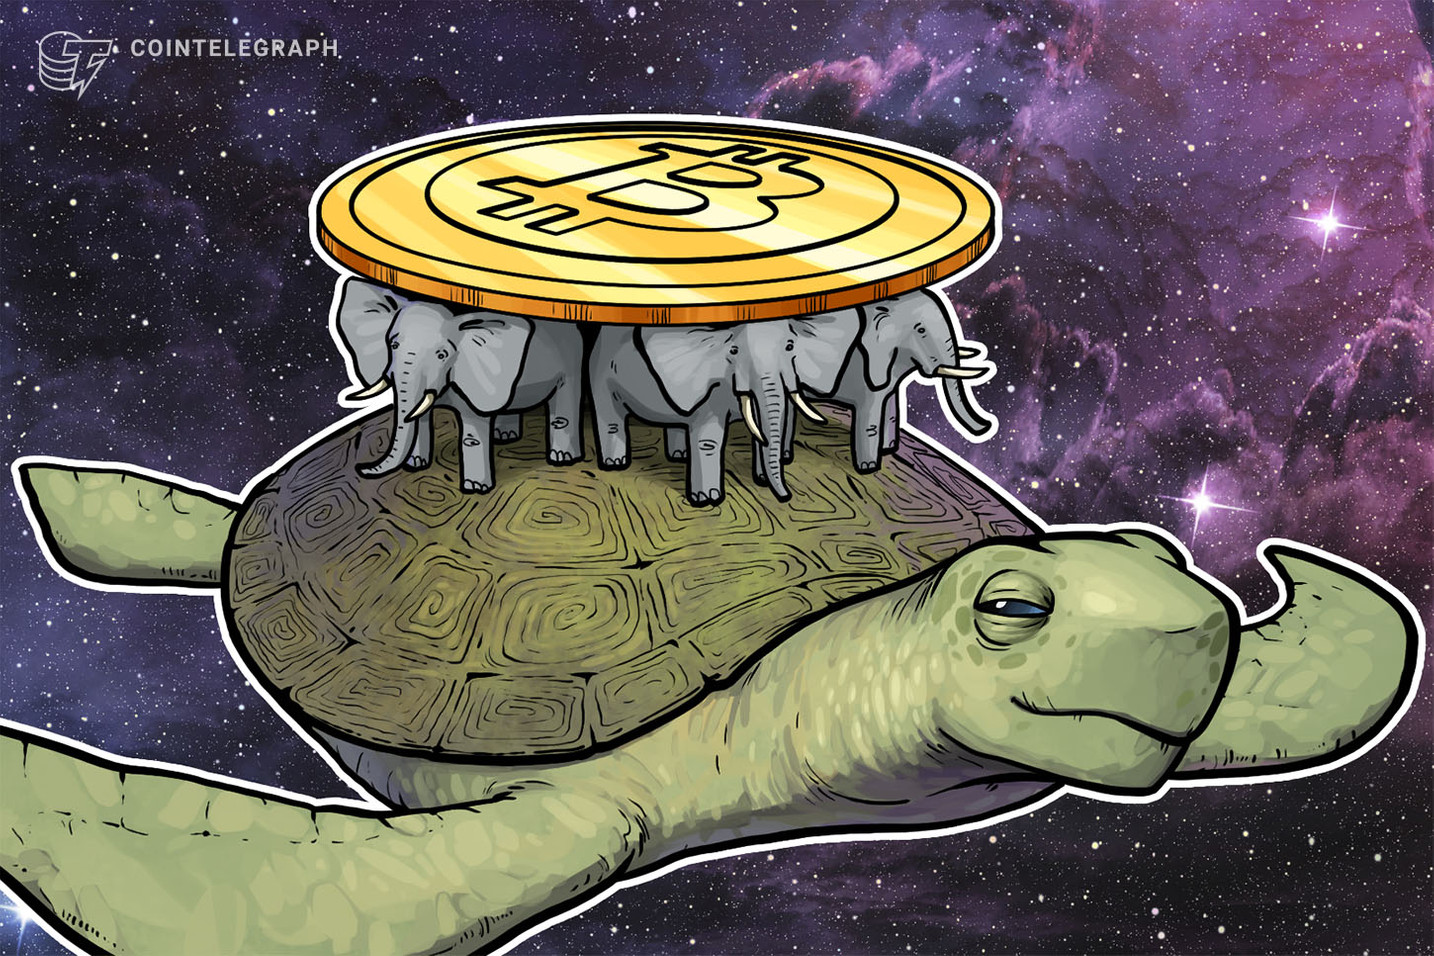 Institutional Bitcoin Trading Volumes See Fourth Month of Growth, Diar Reports